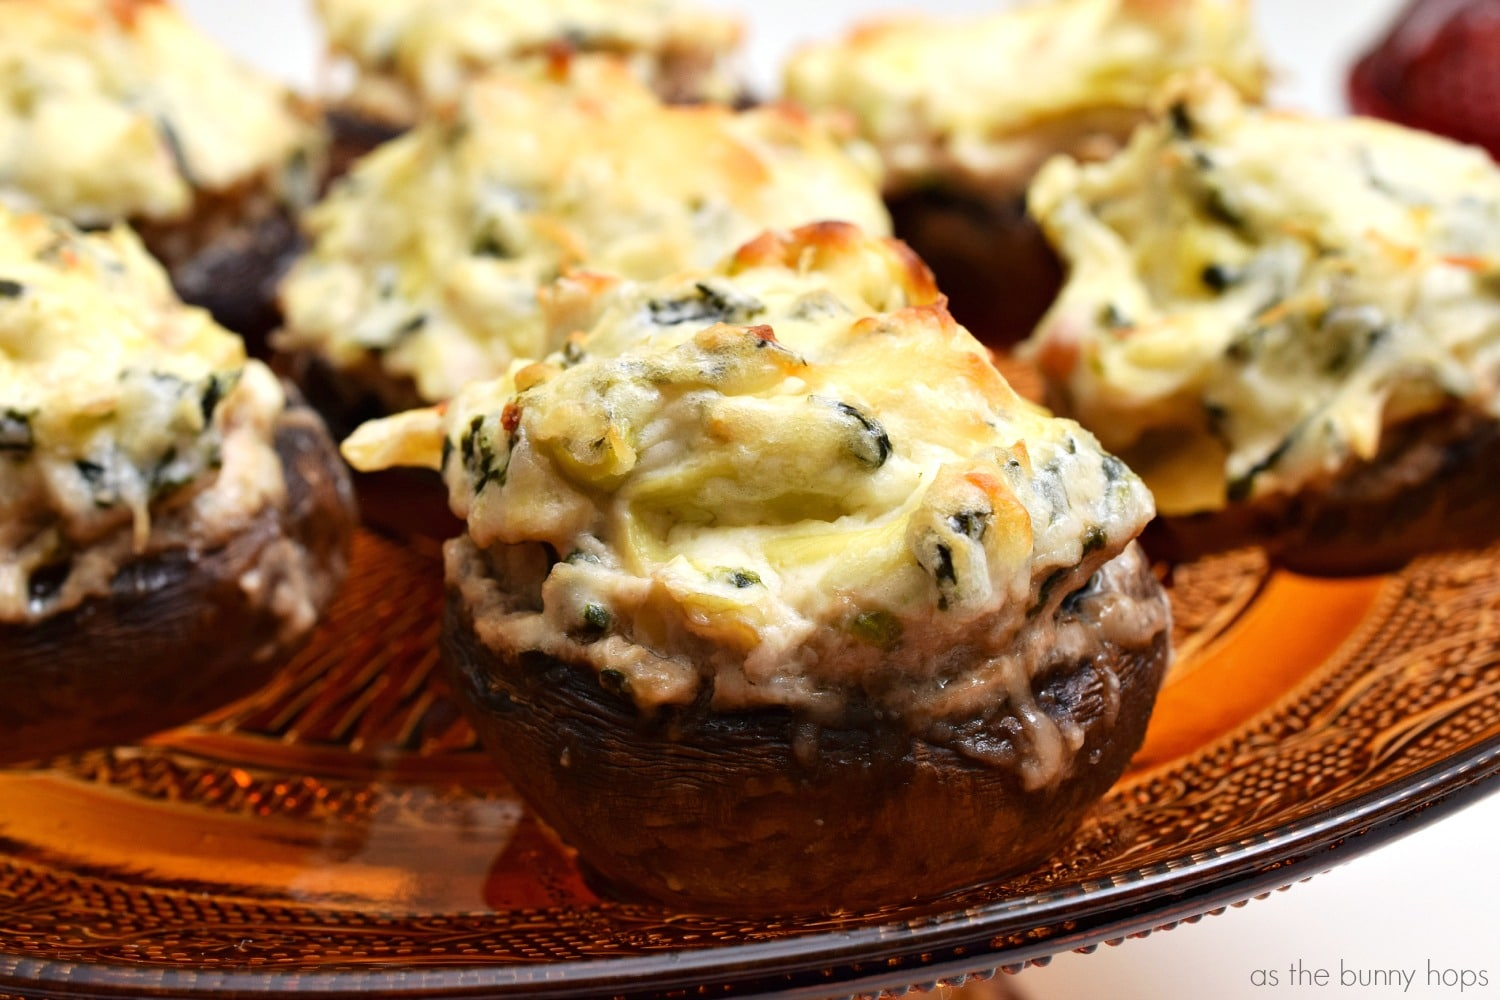 Communication on this topic: Spinach and Artichoke Stuffed Mushrooms, spinach-and-artichoke-stuffed-mushrooms/